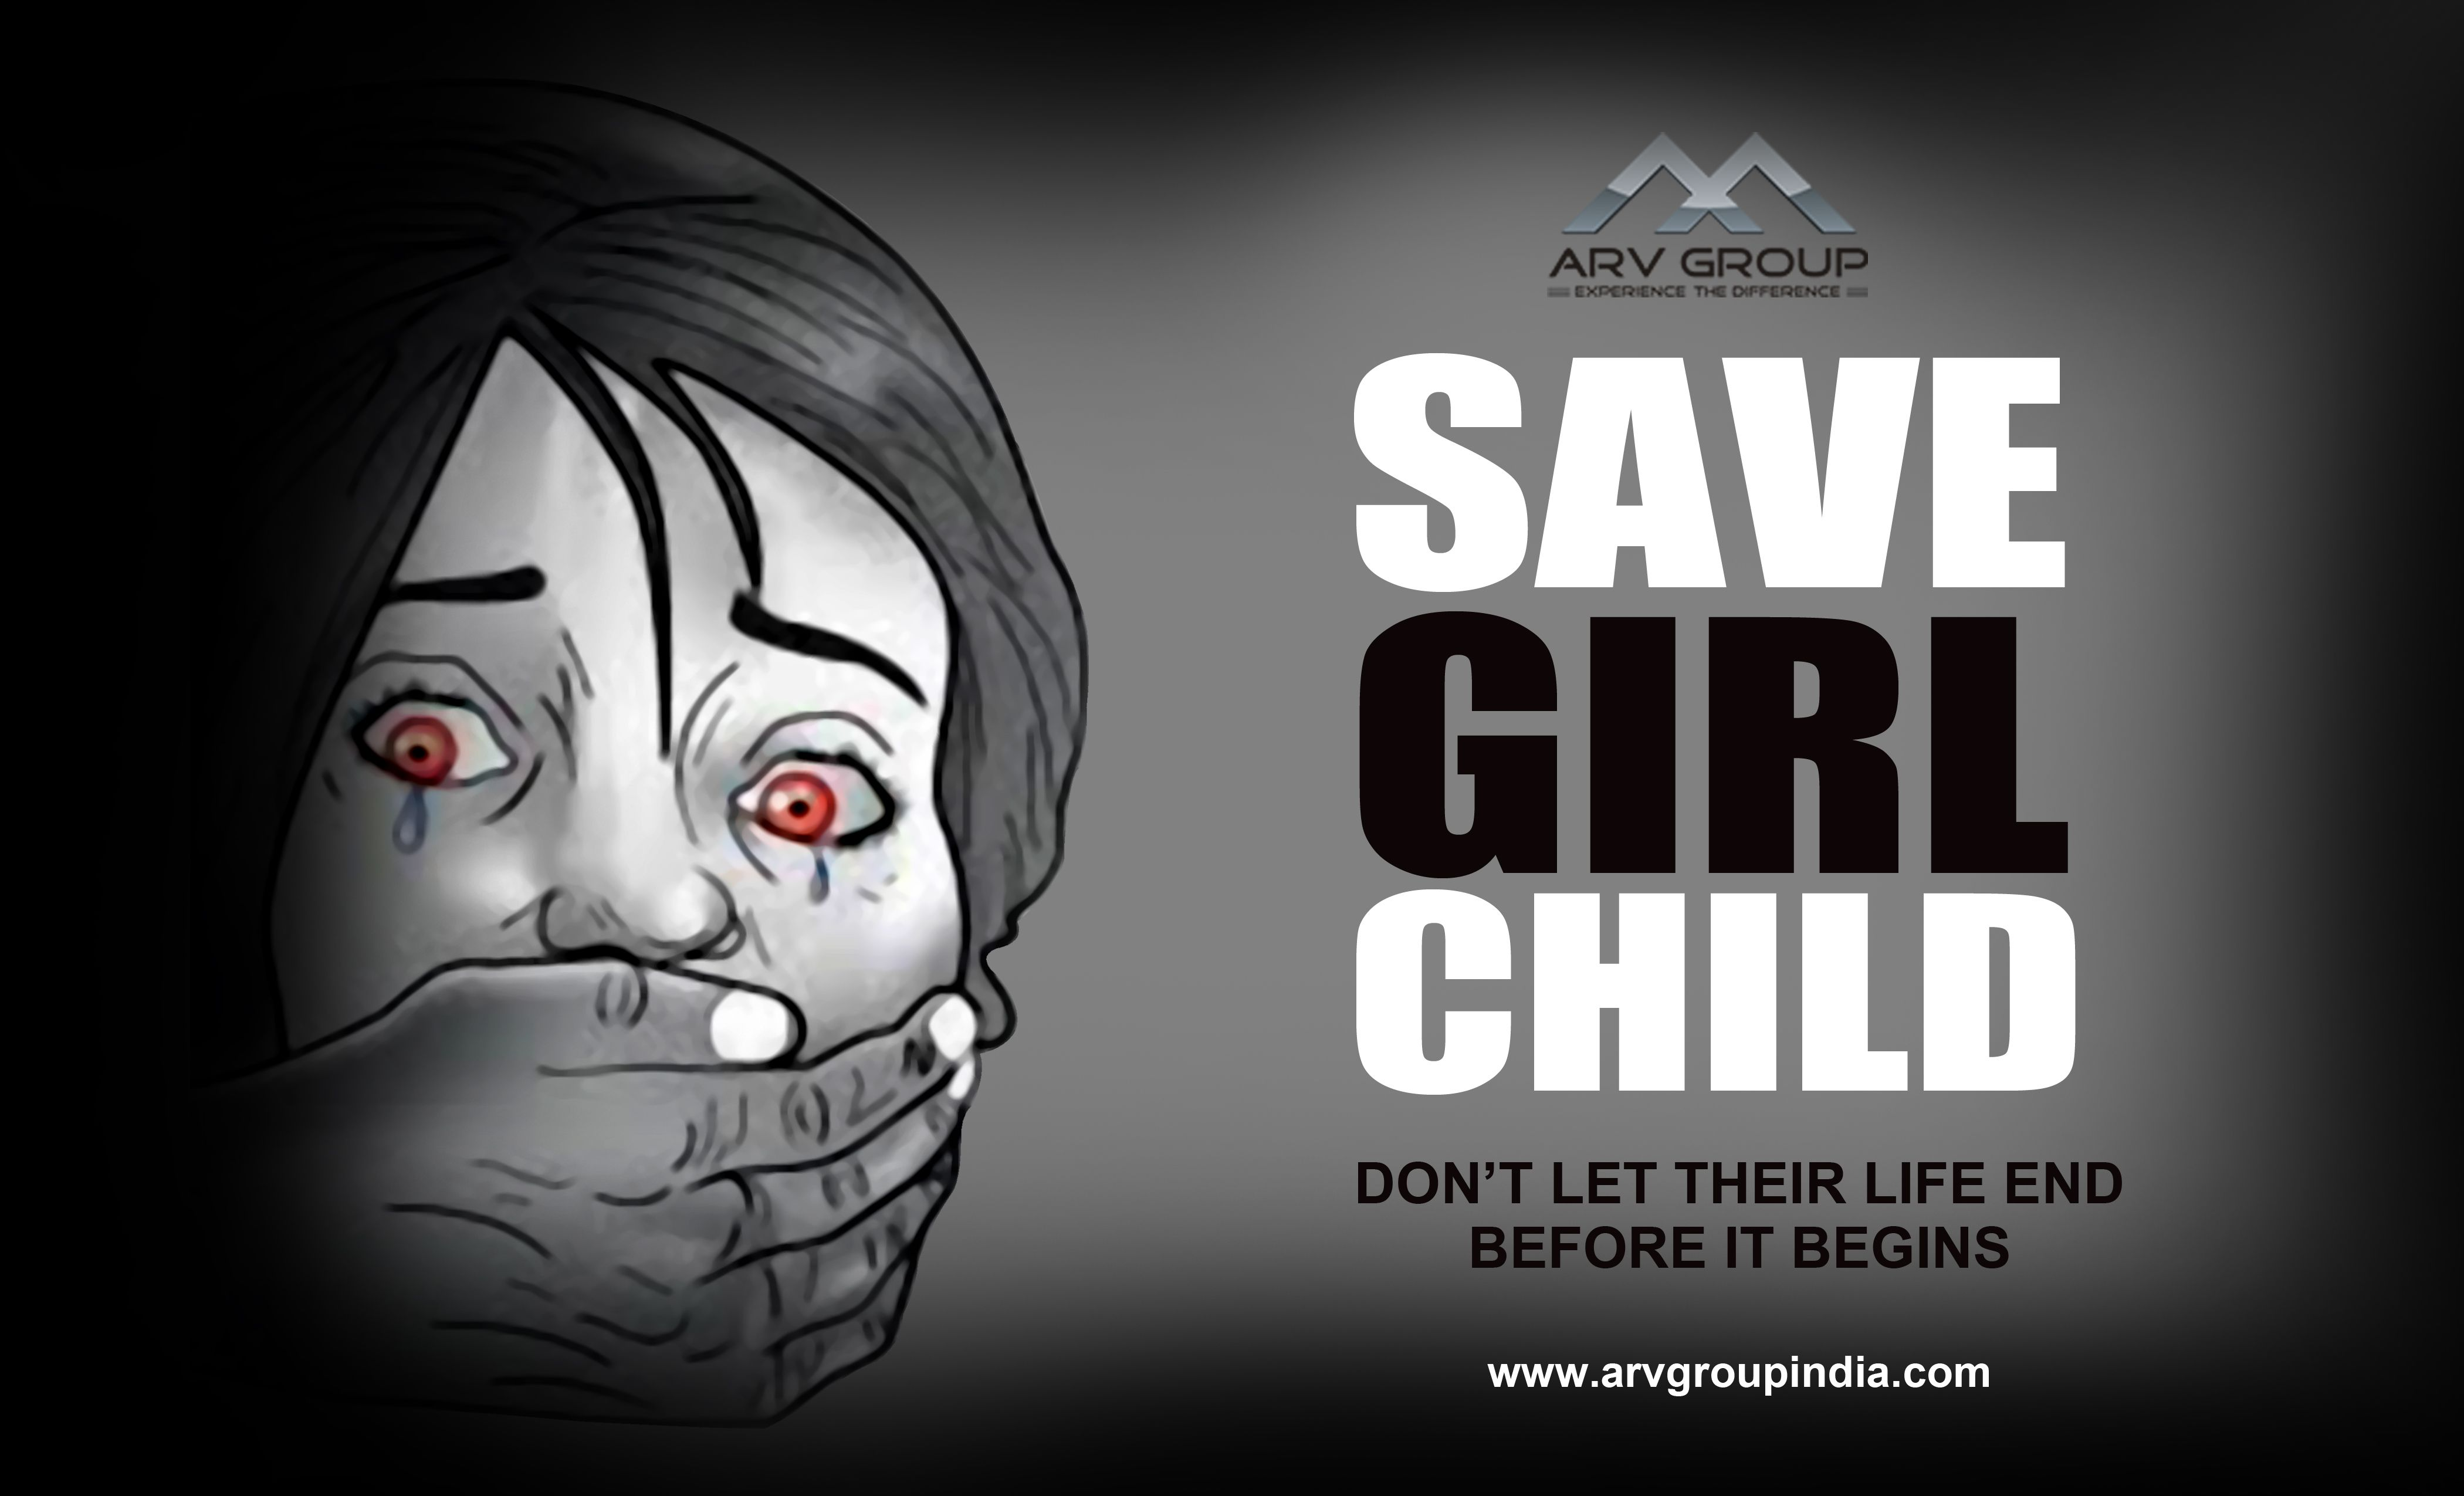 Care about them #Save #Girl #Child.